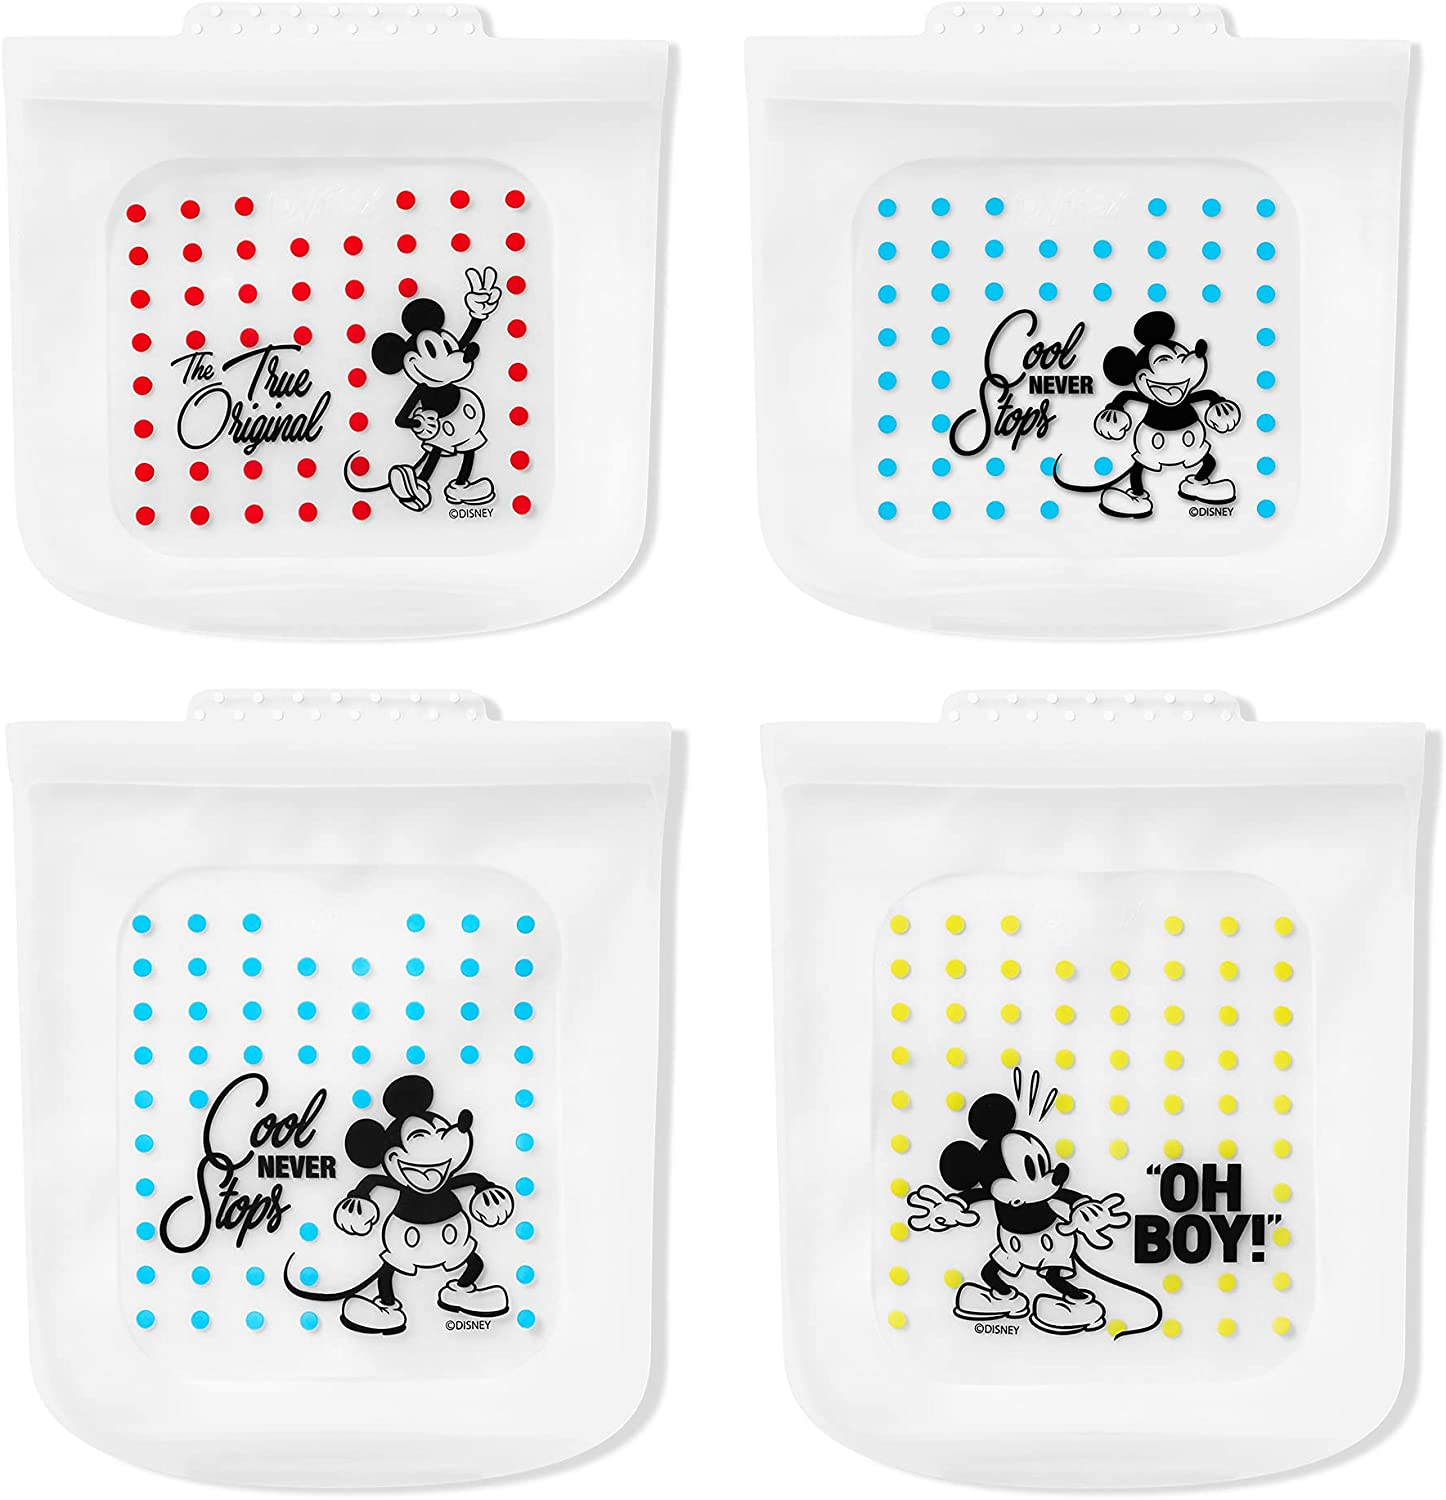 Pyrex Max 83% OFF Reusable 67% OFF of fixed price Platinum Grade Silicone Disney Food Storage Bag